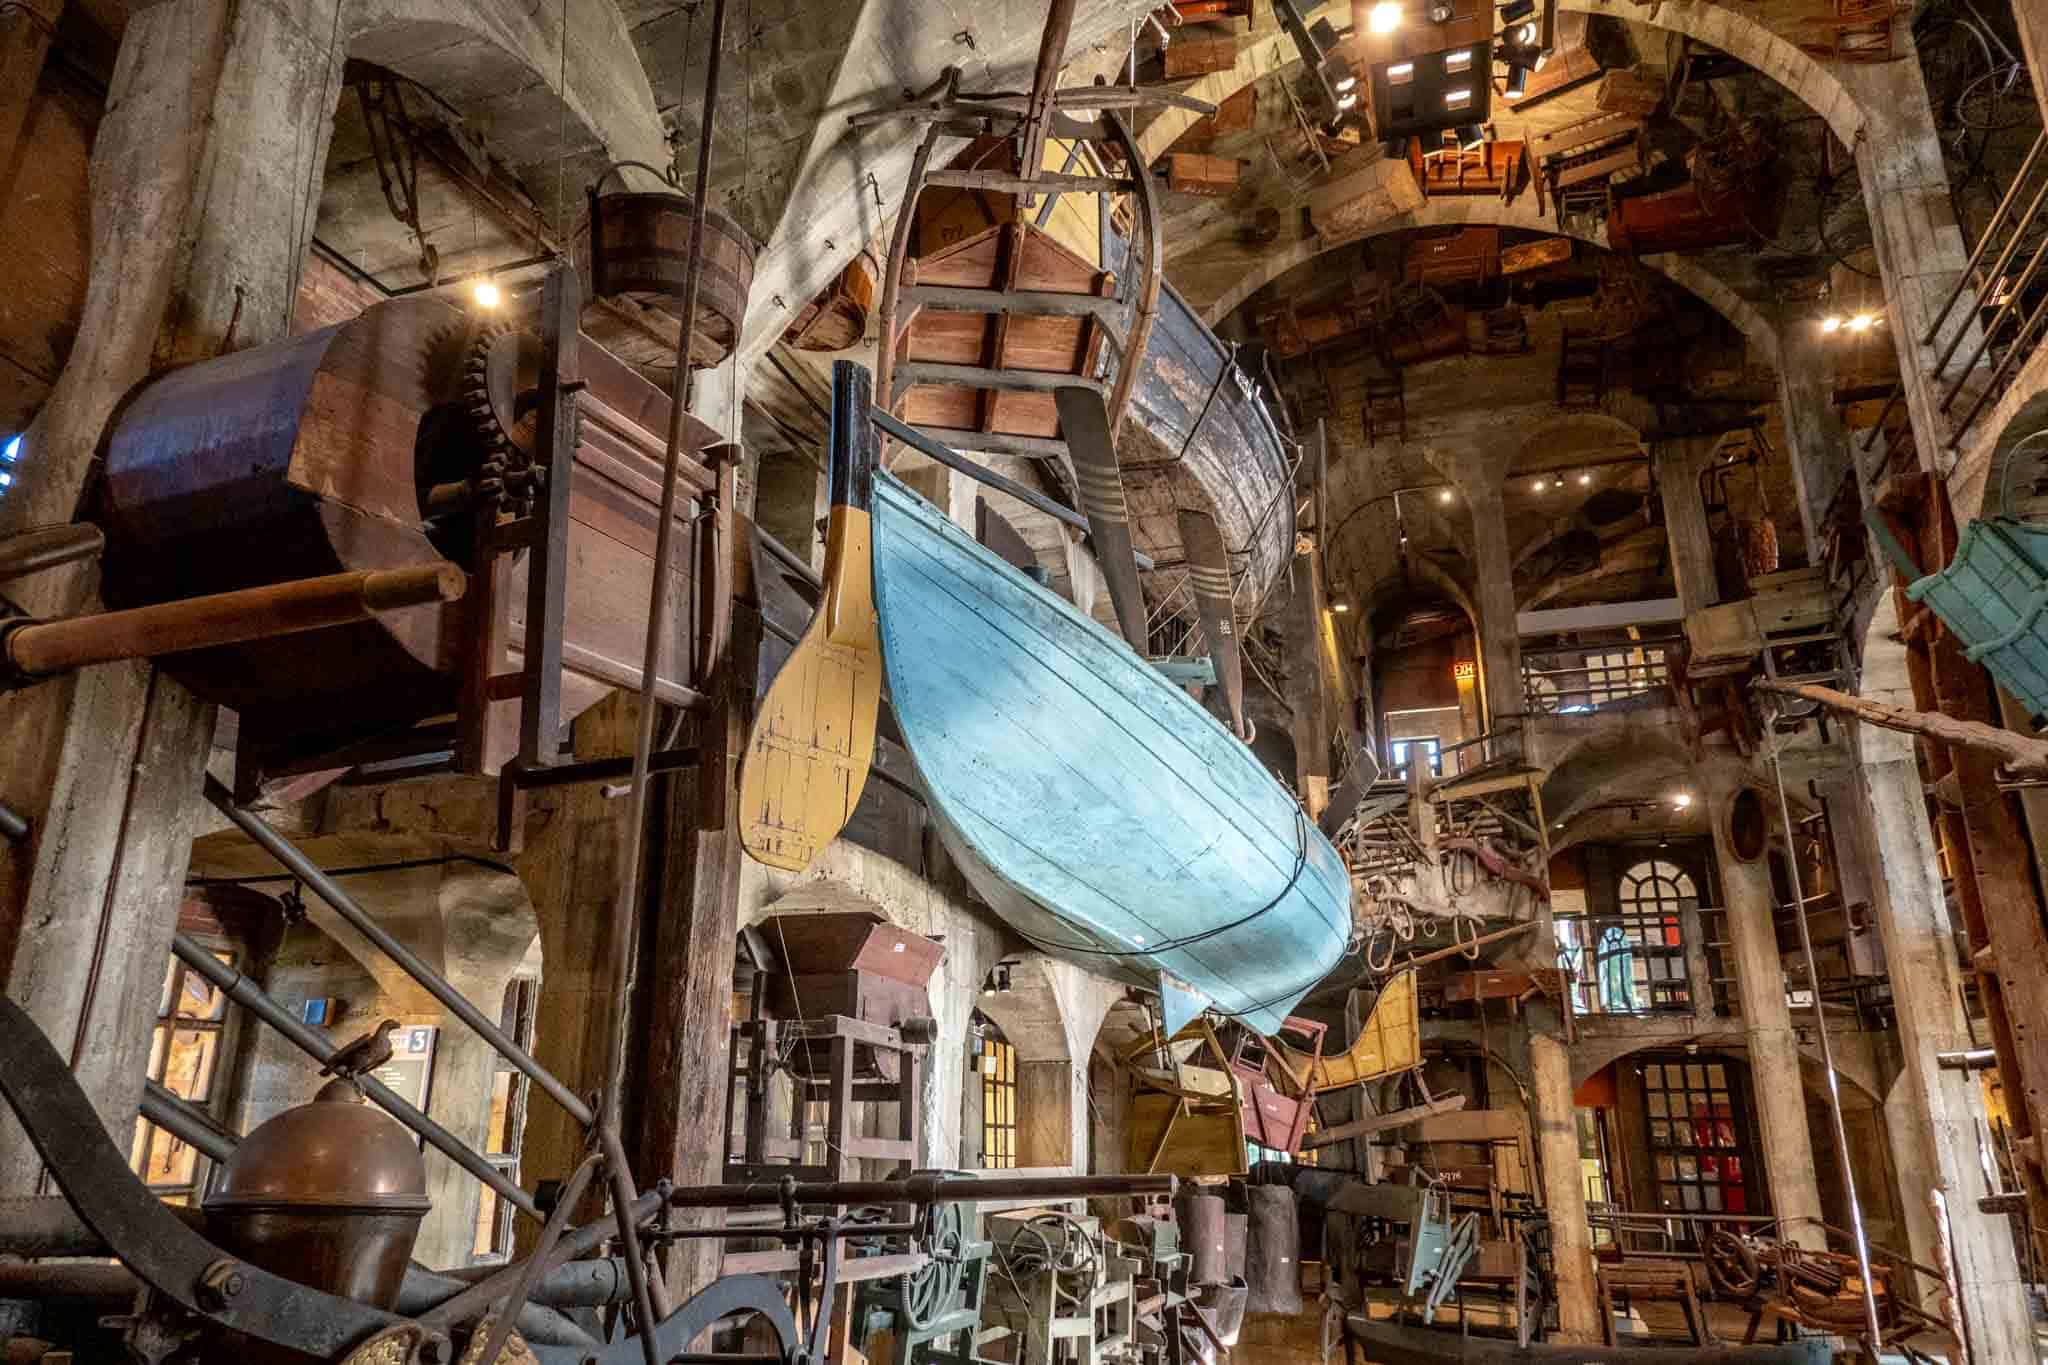 Boats hanging from the ceiling in Mercer Museum